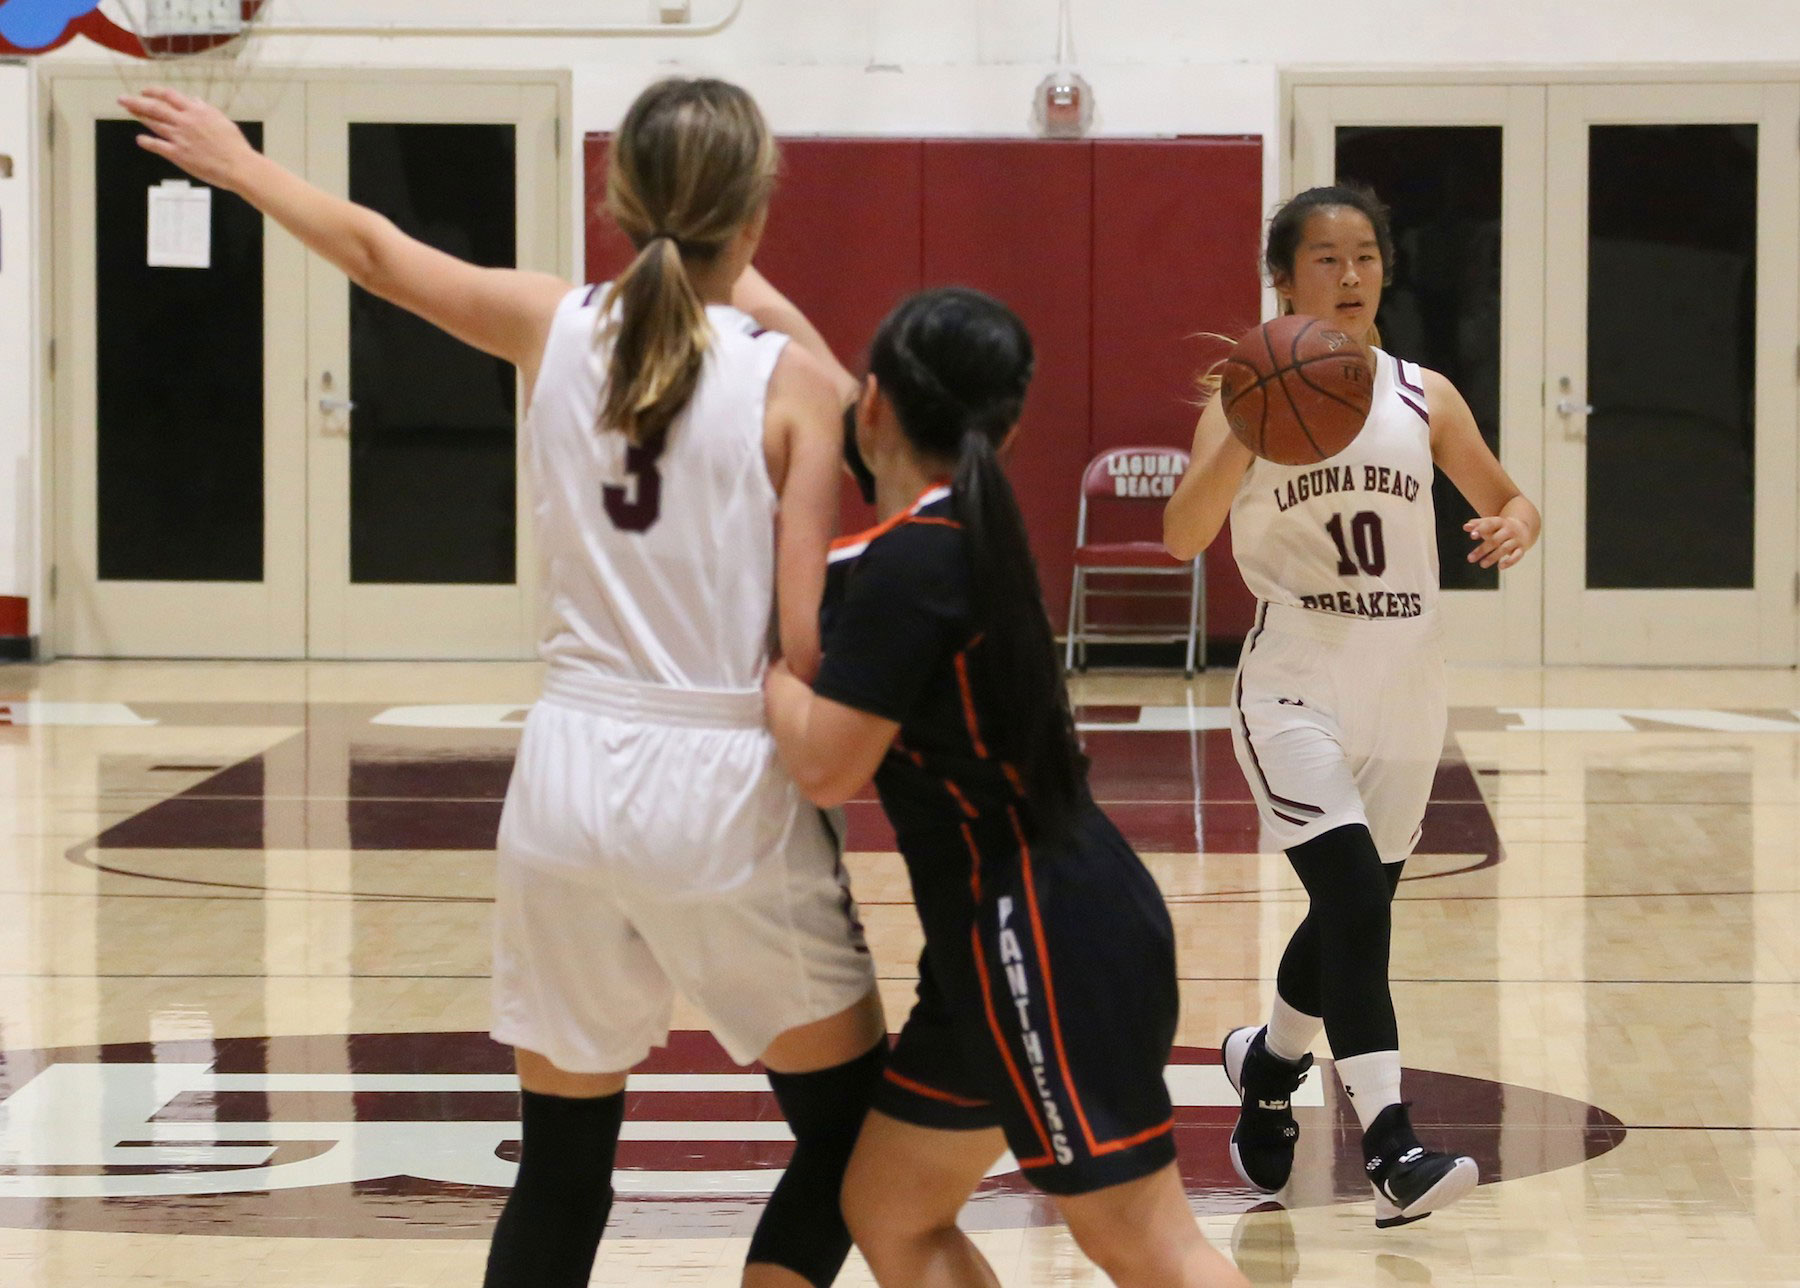 LBHS girls playing